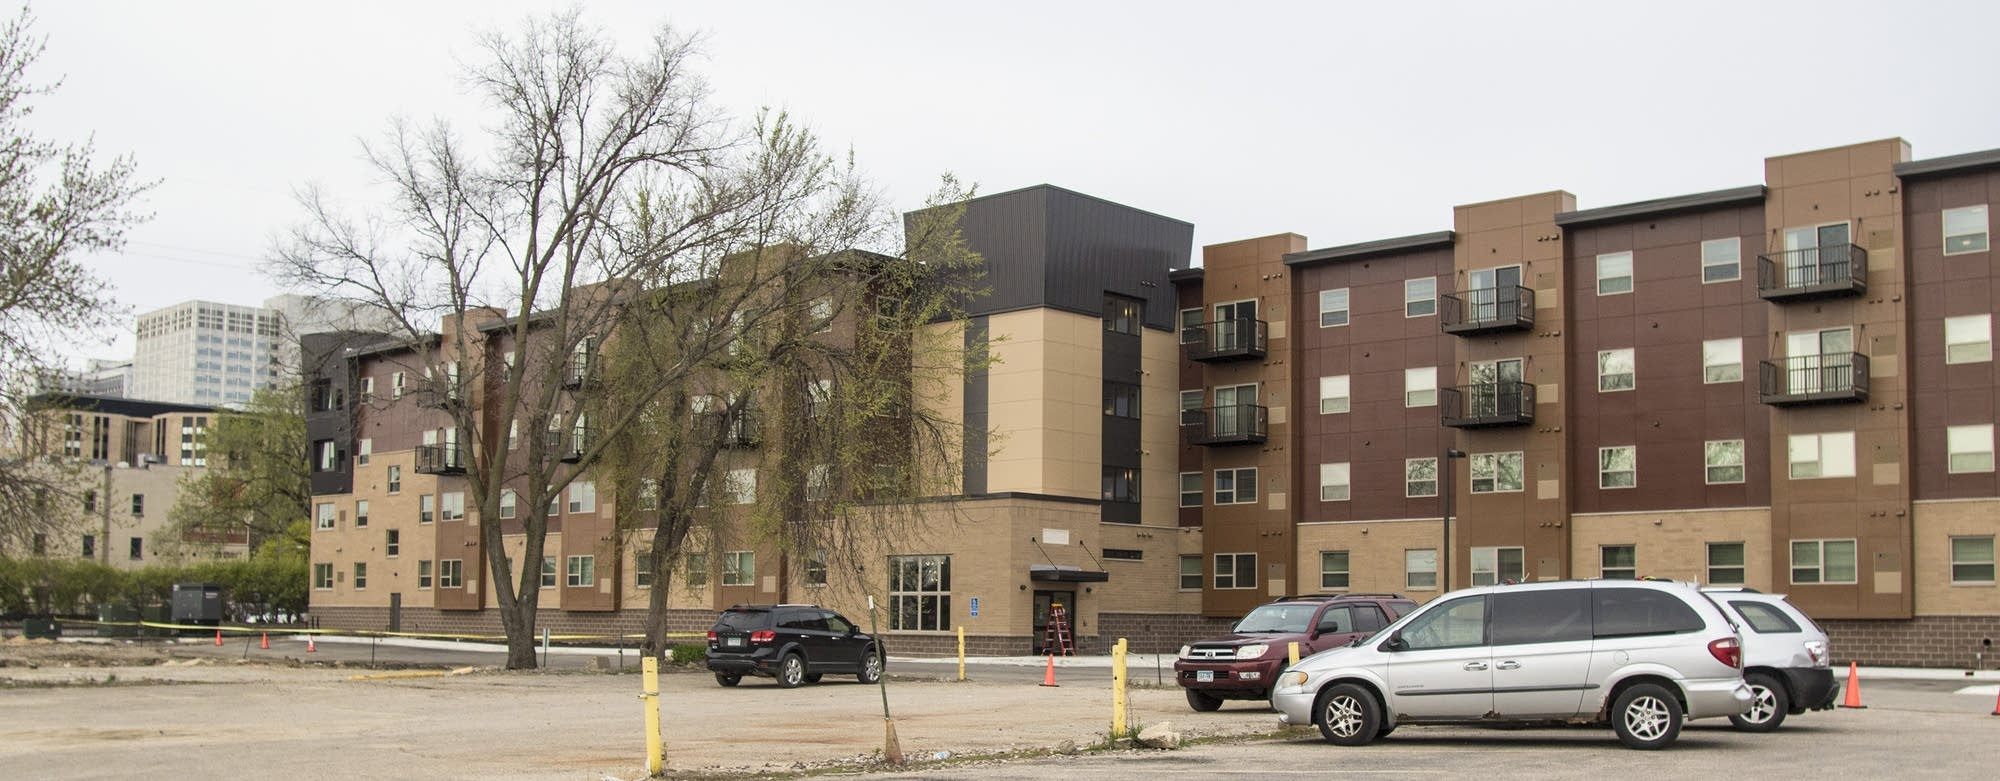 The new 68 unit 1st Avenue Flats apartment complex opened in April.